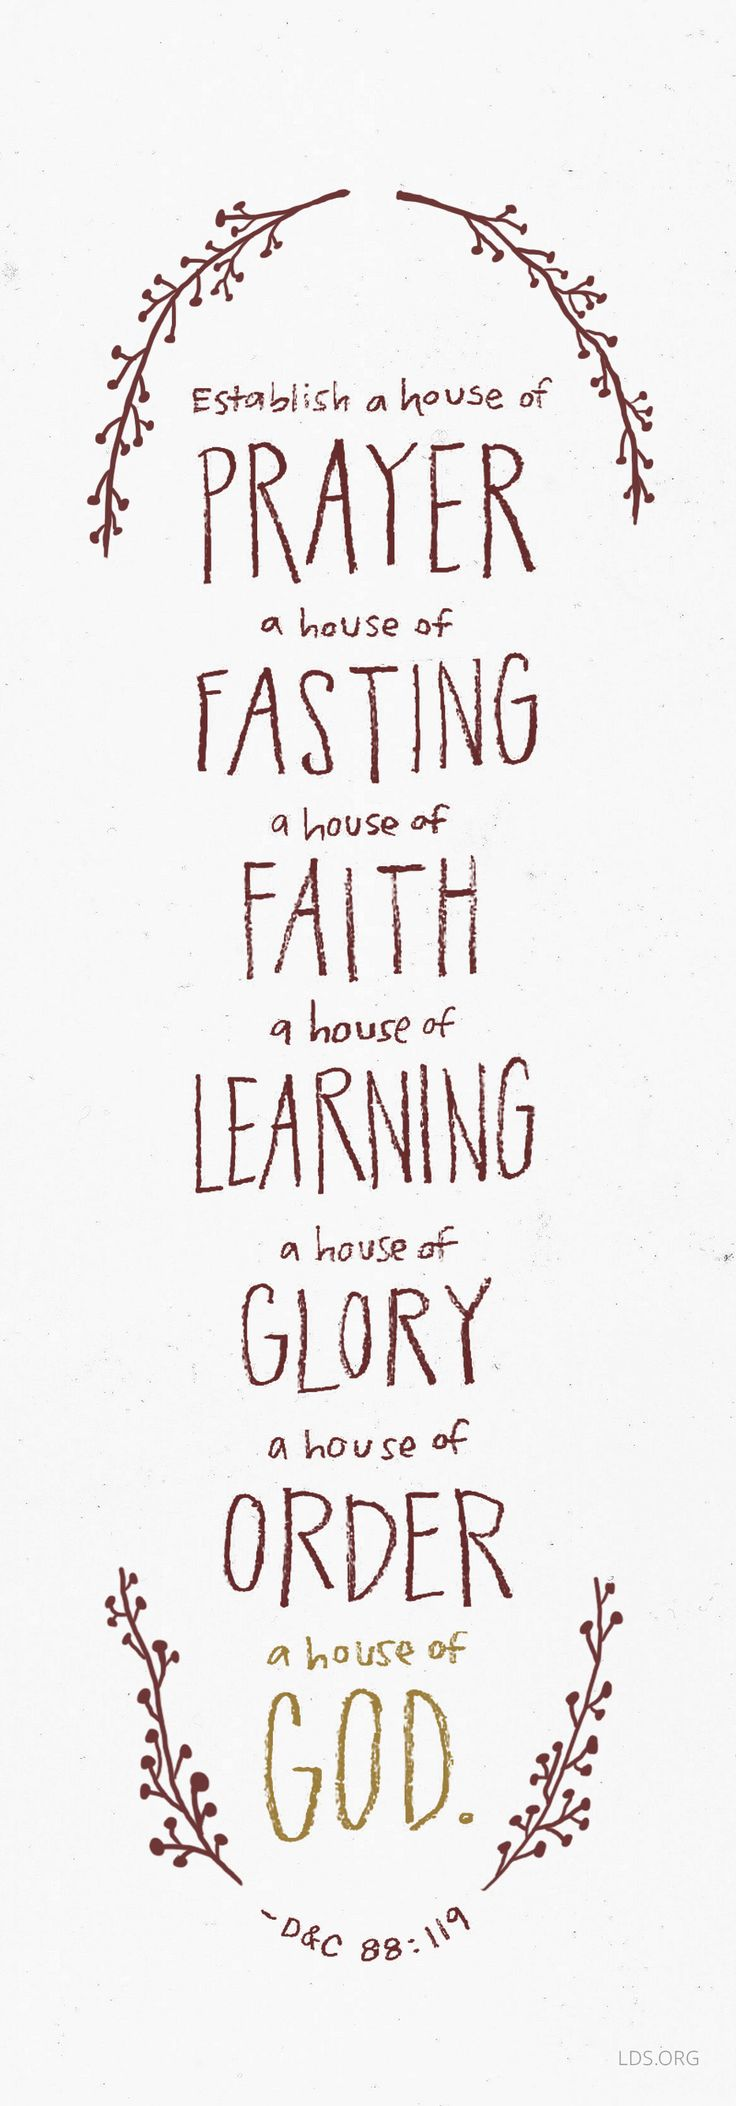 Establish a house of prayer, a house of fasting, a house of faith, a house of learning, a house of glory, a house of order, a house of god. –D&C 88:119 #LDS